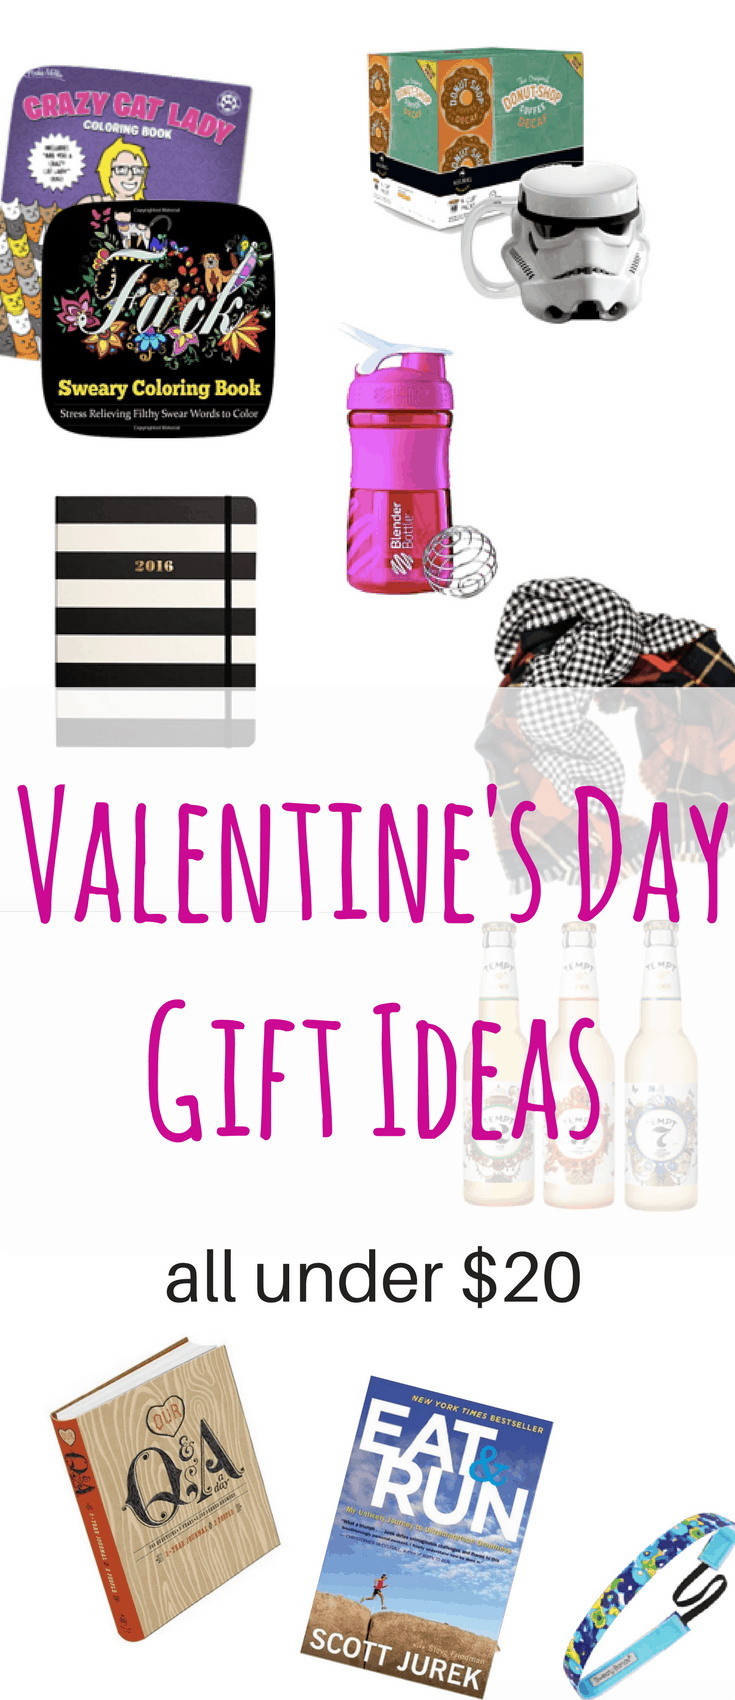 These Valentine's Gift Ideas are perfect for him and her and are all under twenty dollars. Plus, they're perfect for Galentine's Day and all your friends and family.